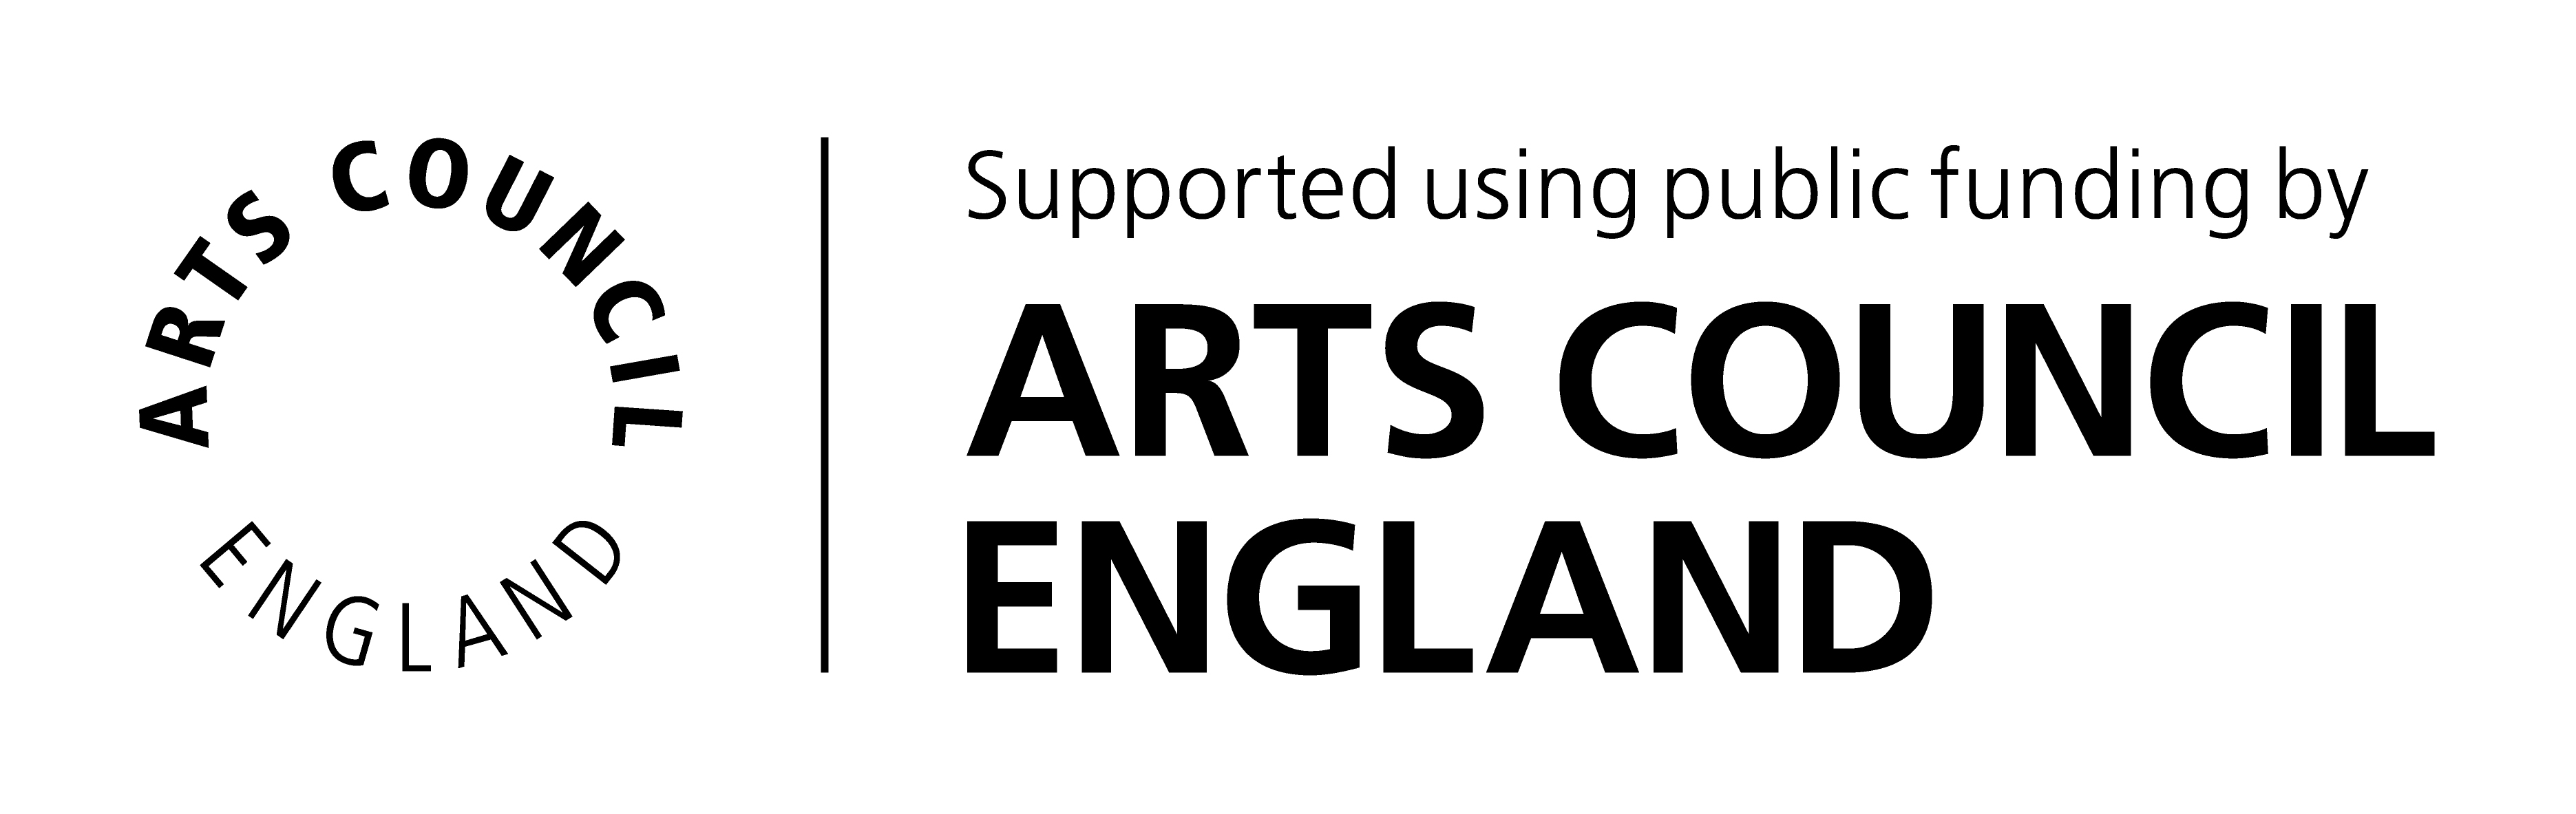 https://www.artscouncil.org.uk/